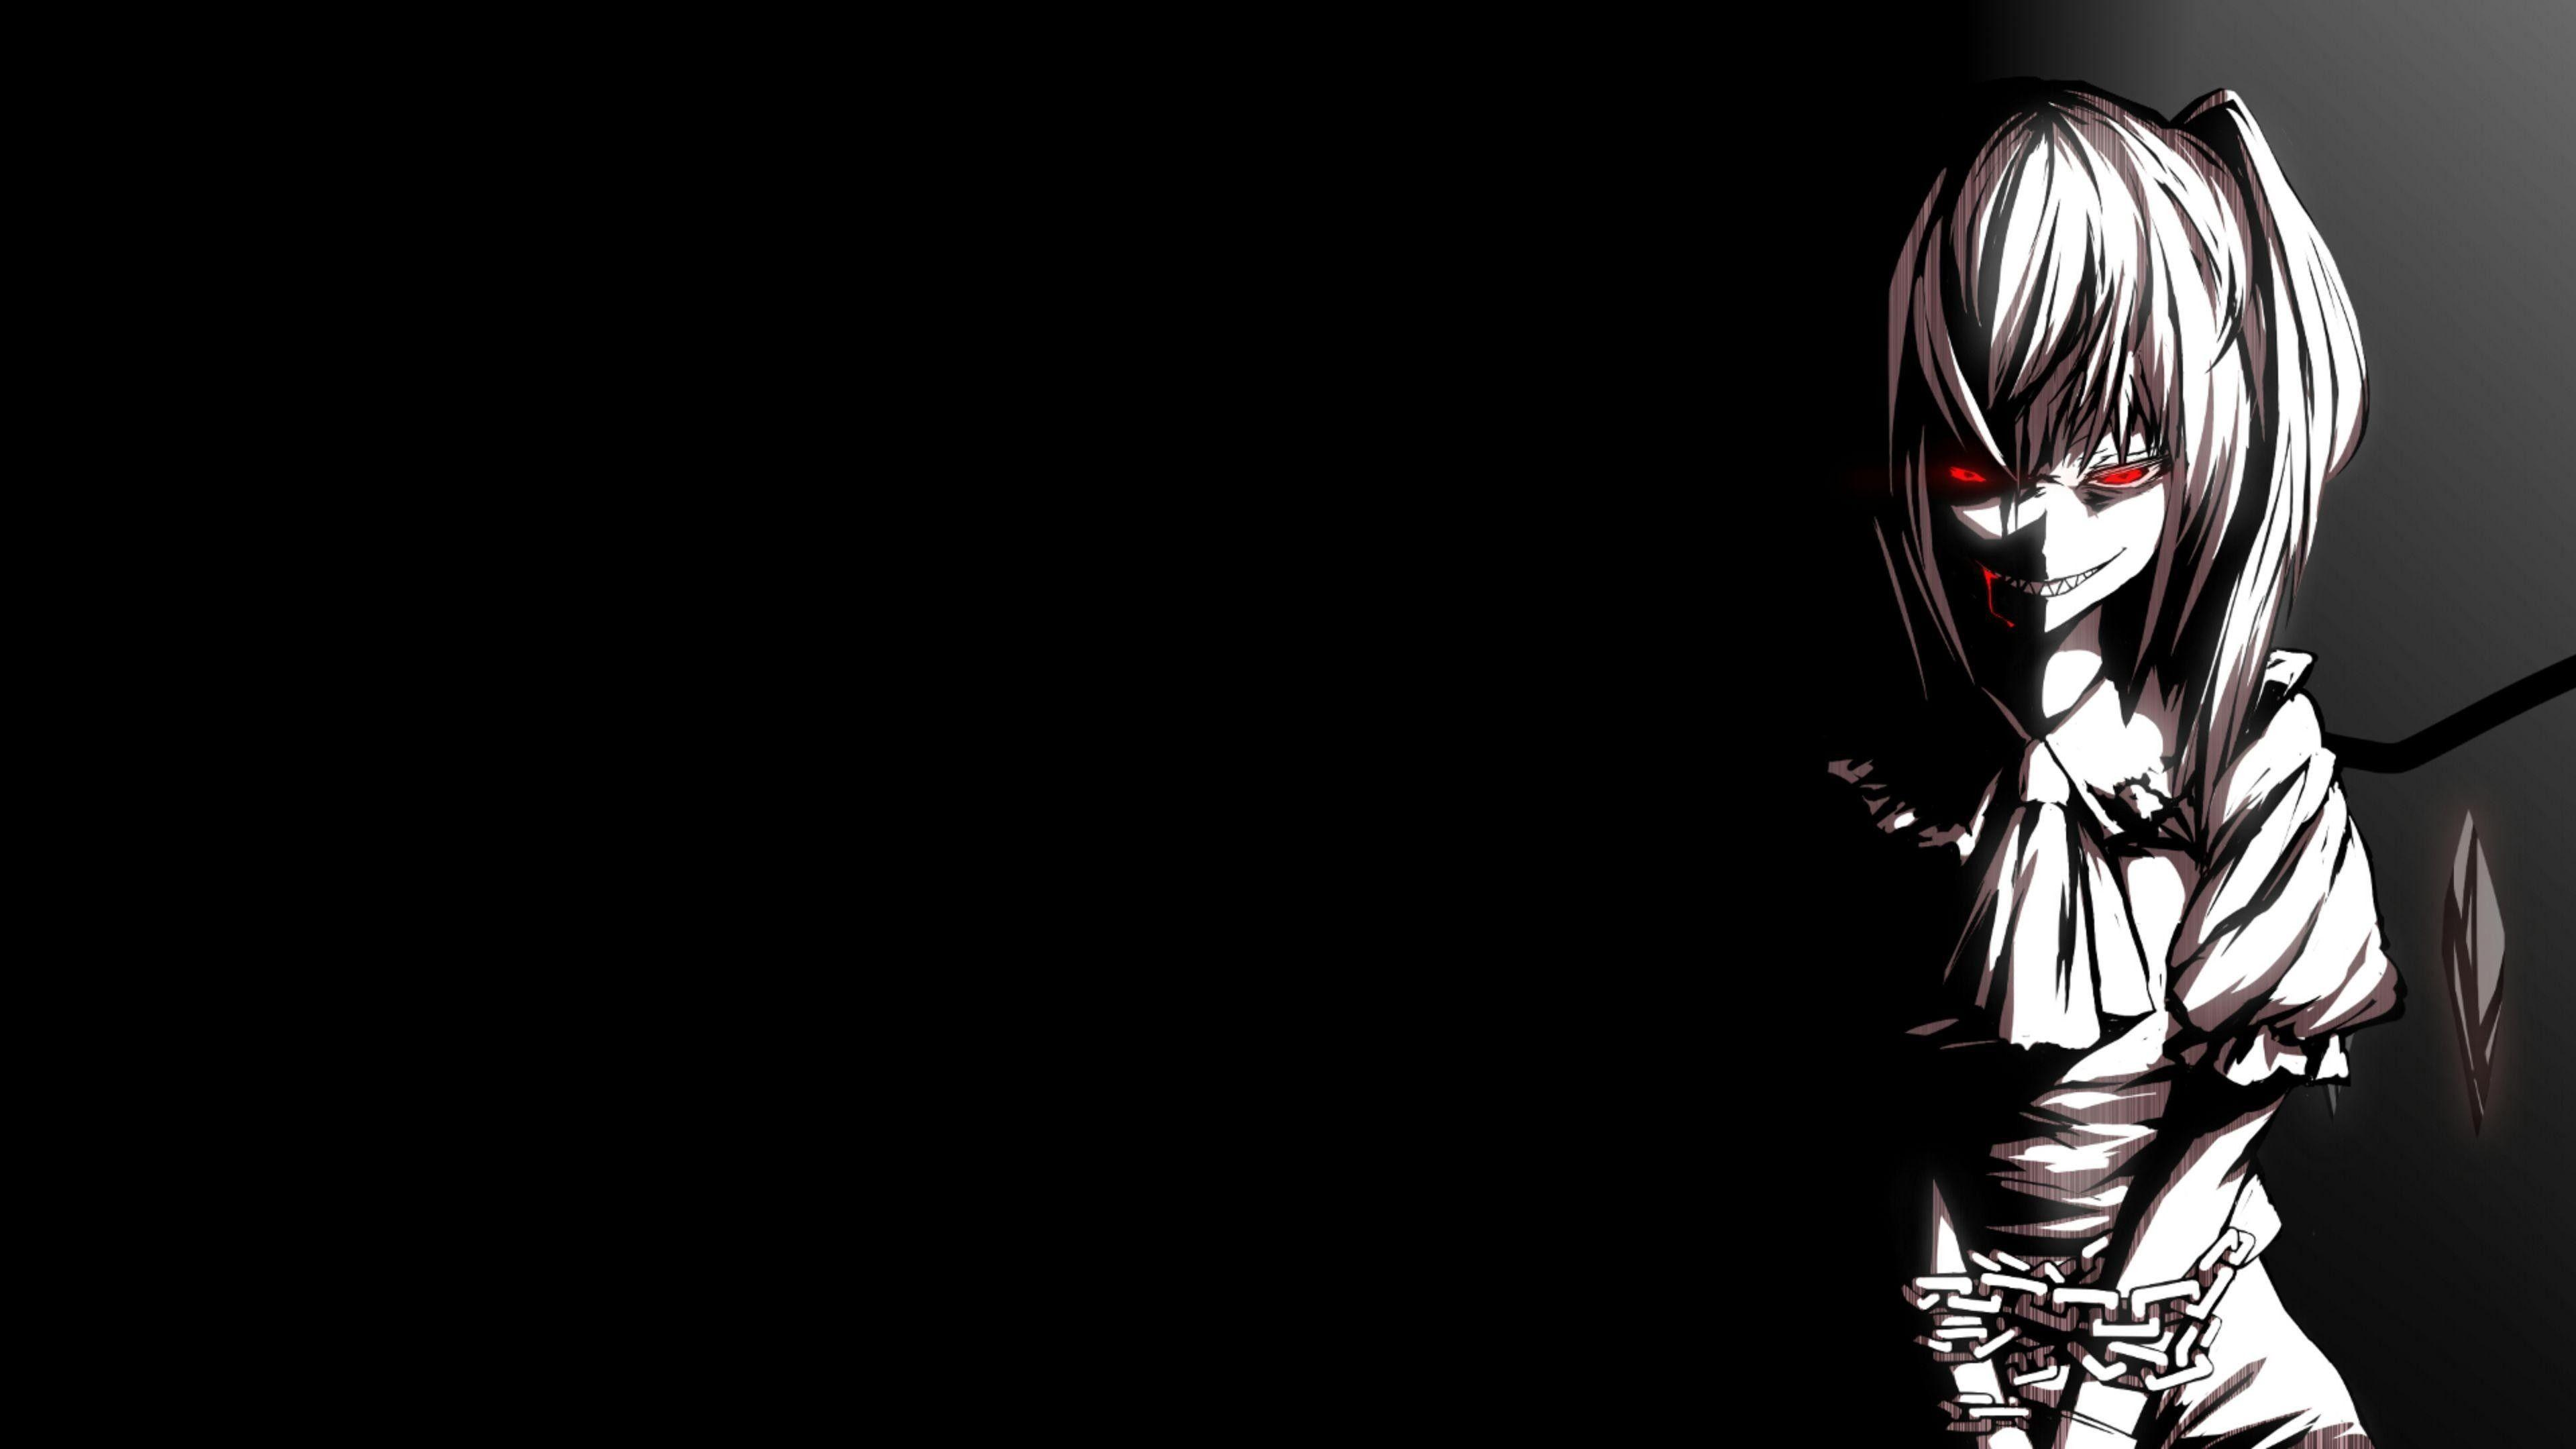 Jeff The Killer Anime Wallpapers Wallpaper Cave